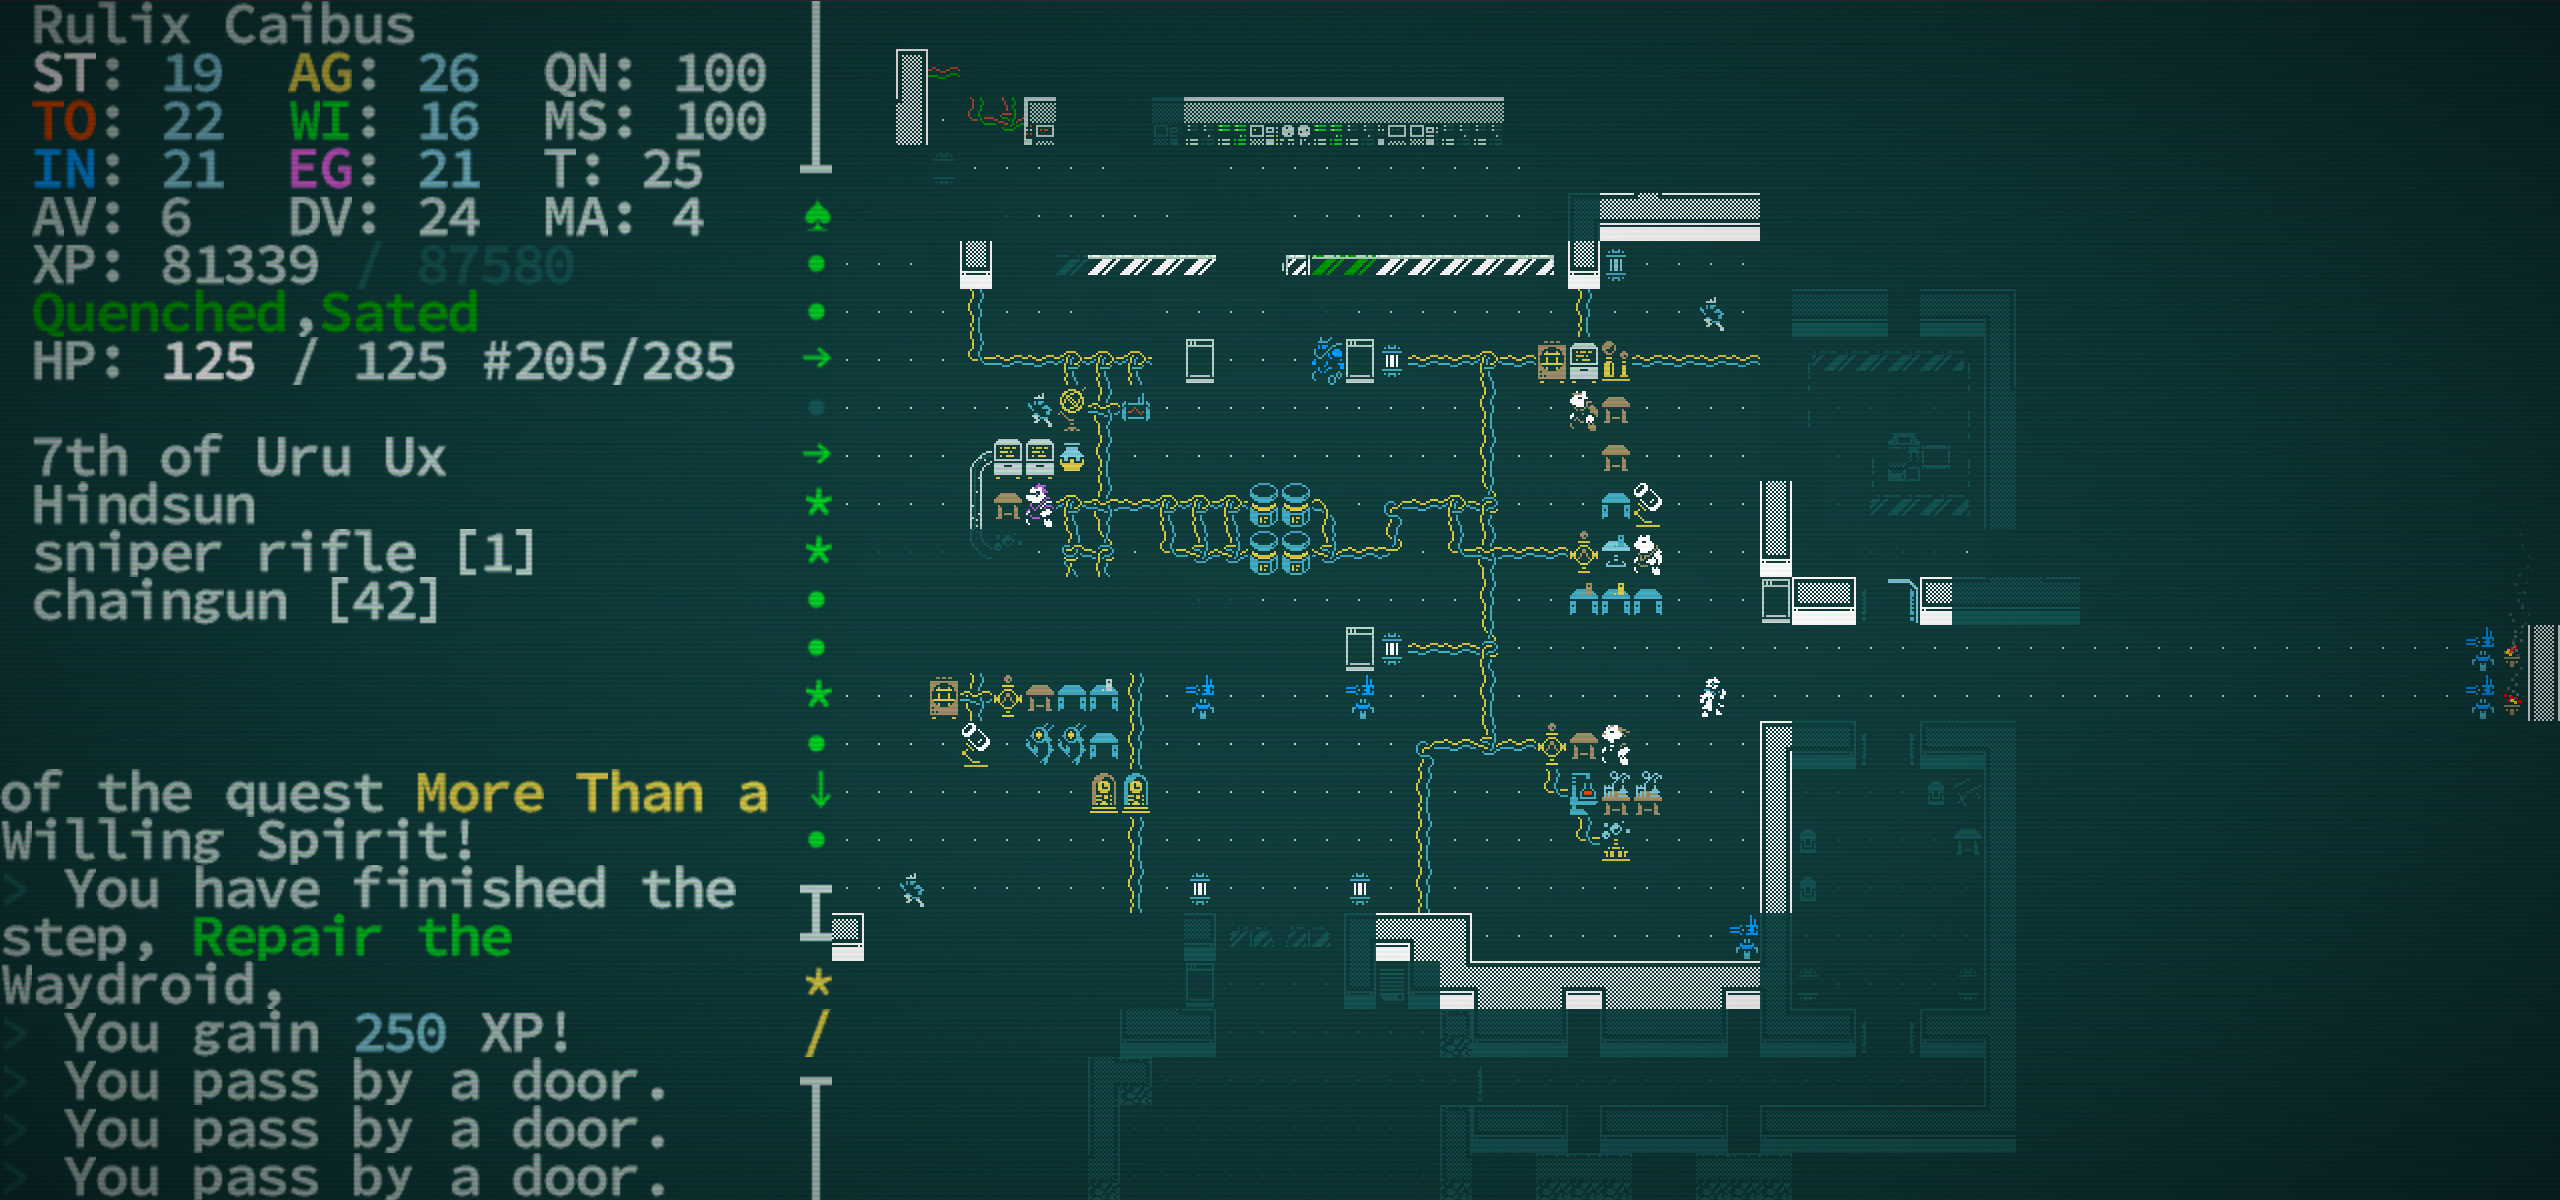 Checking out some ancient technology in Caves of Qud.